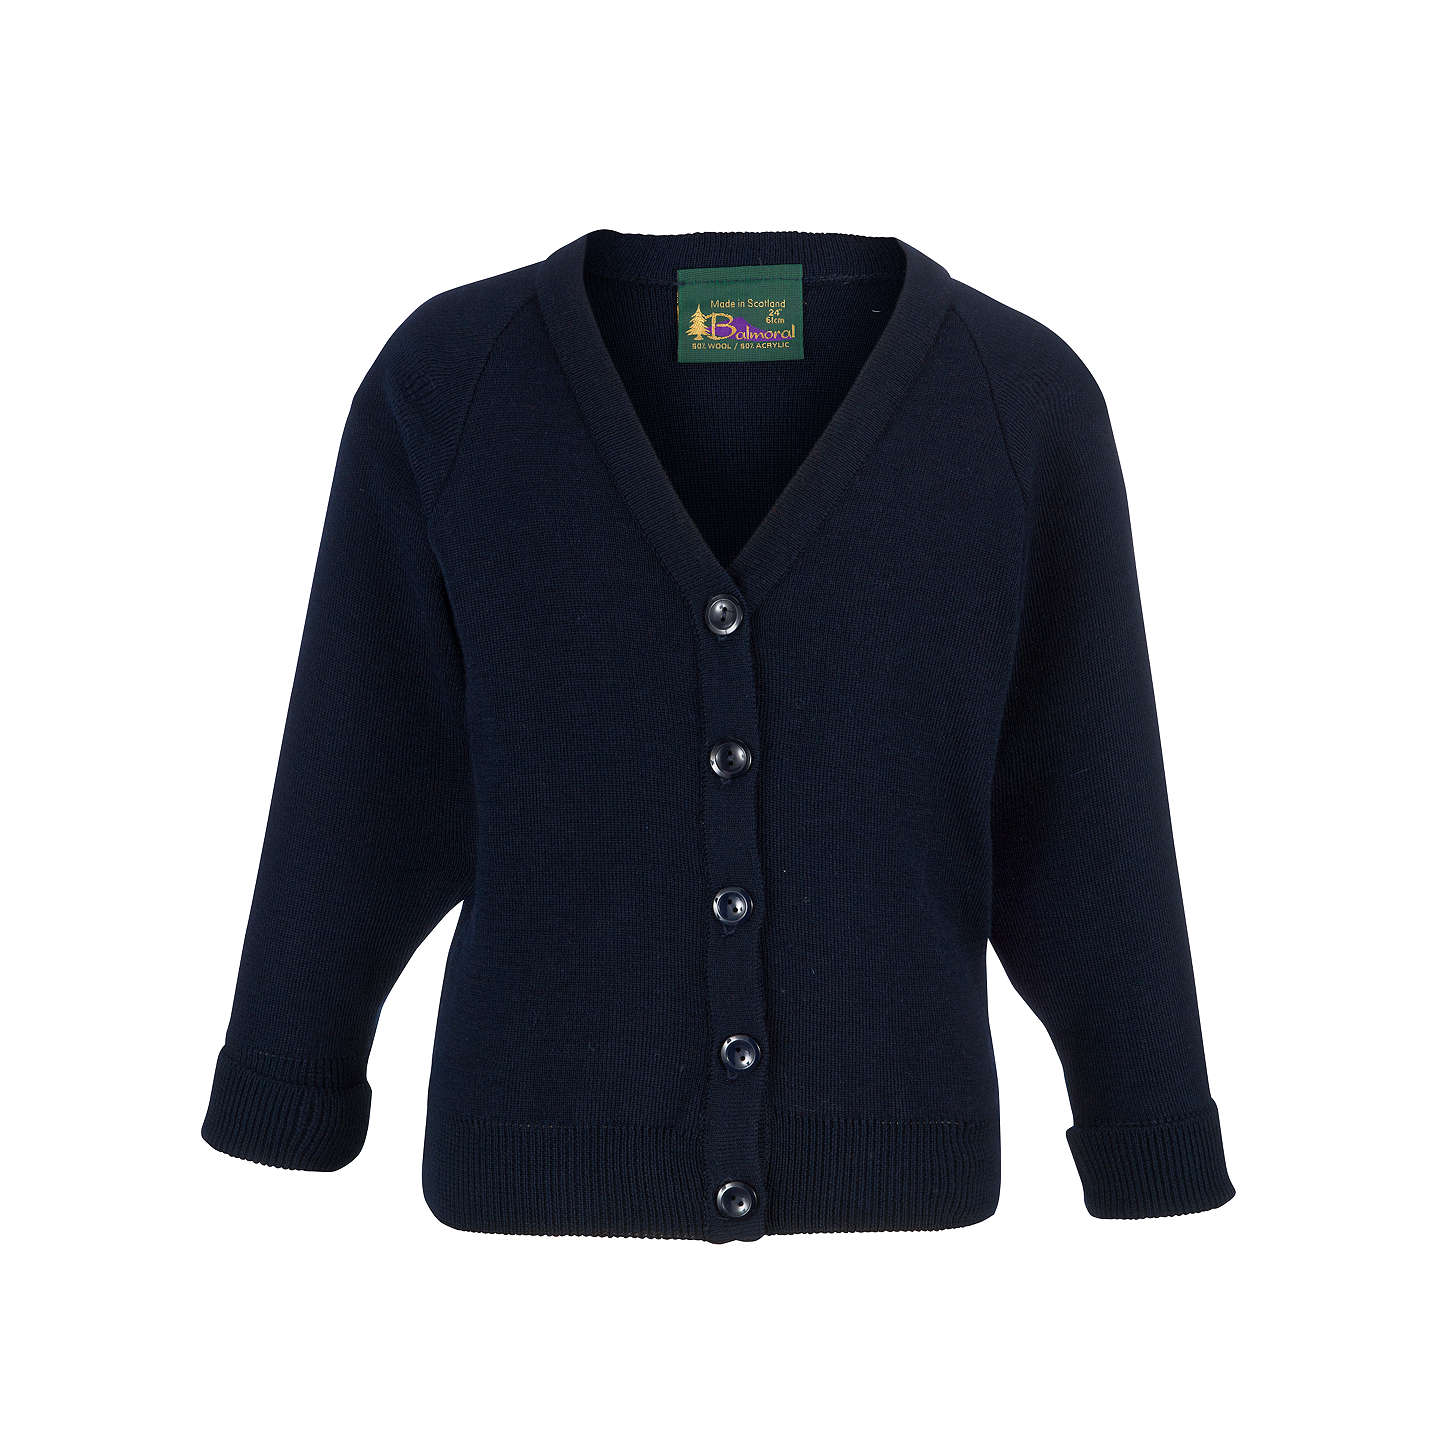 Find great deals on eBay for girls navy blue cardigan. Shop with confidence.